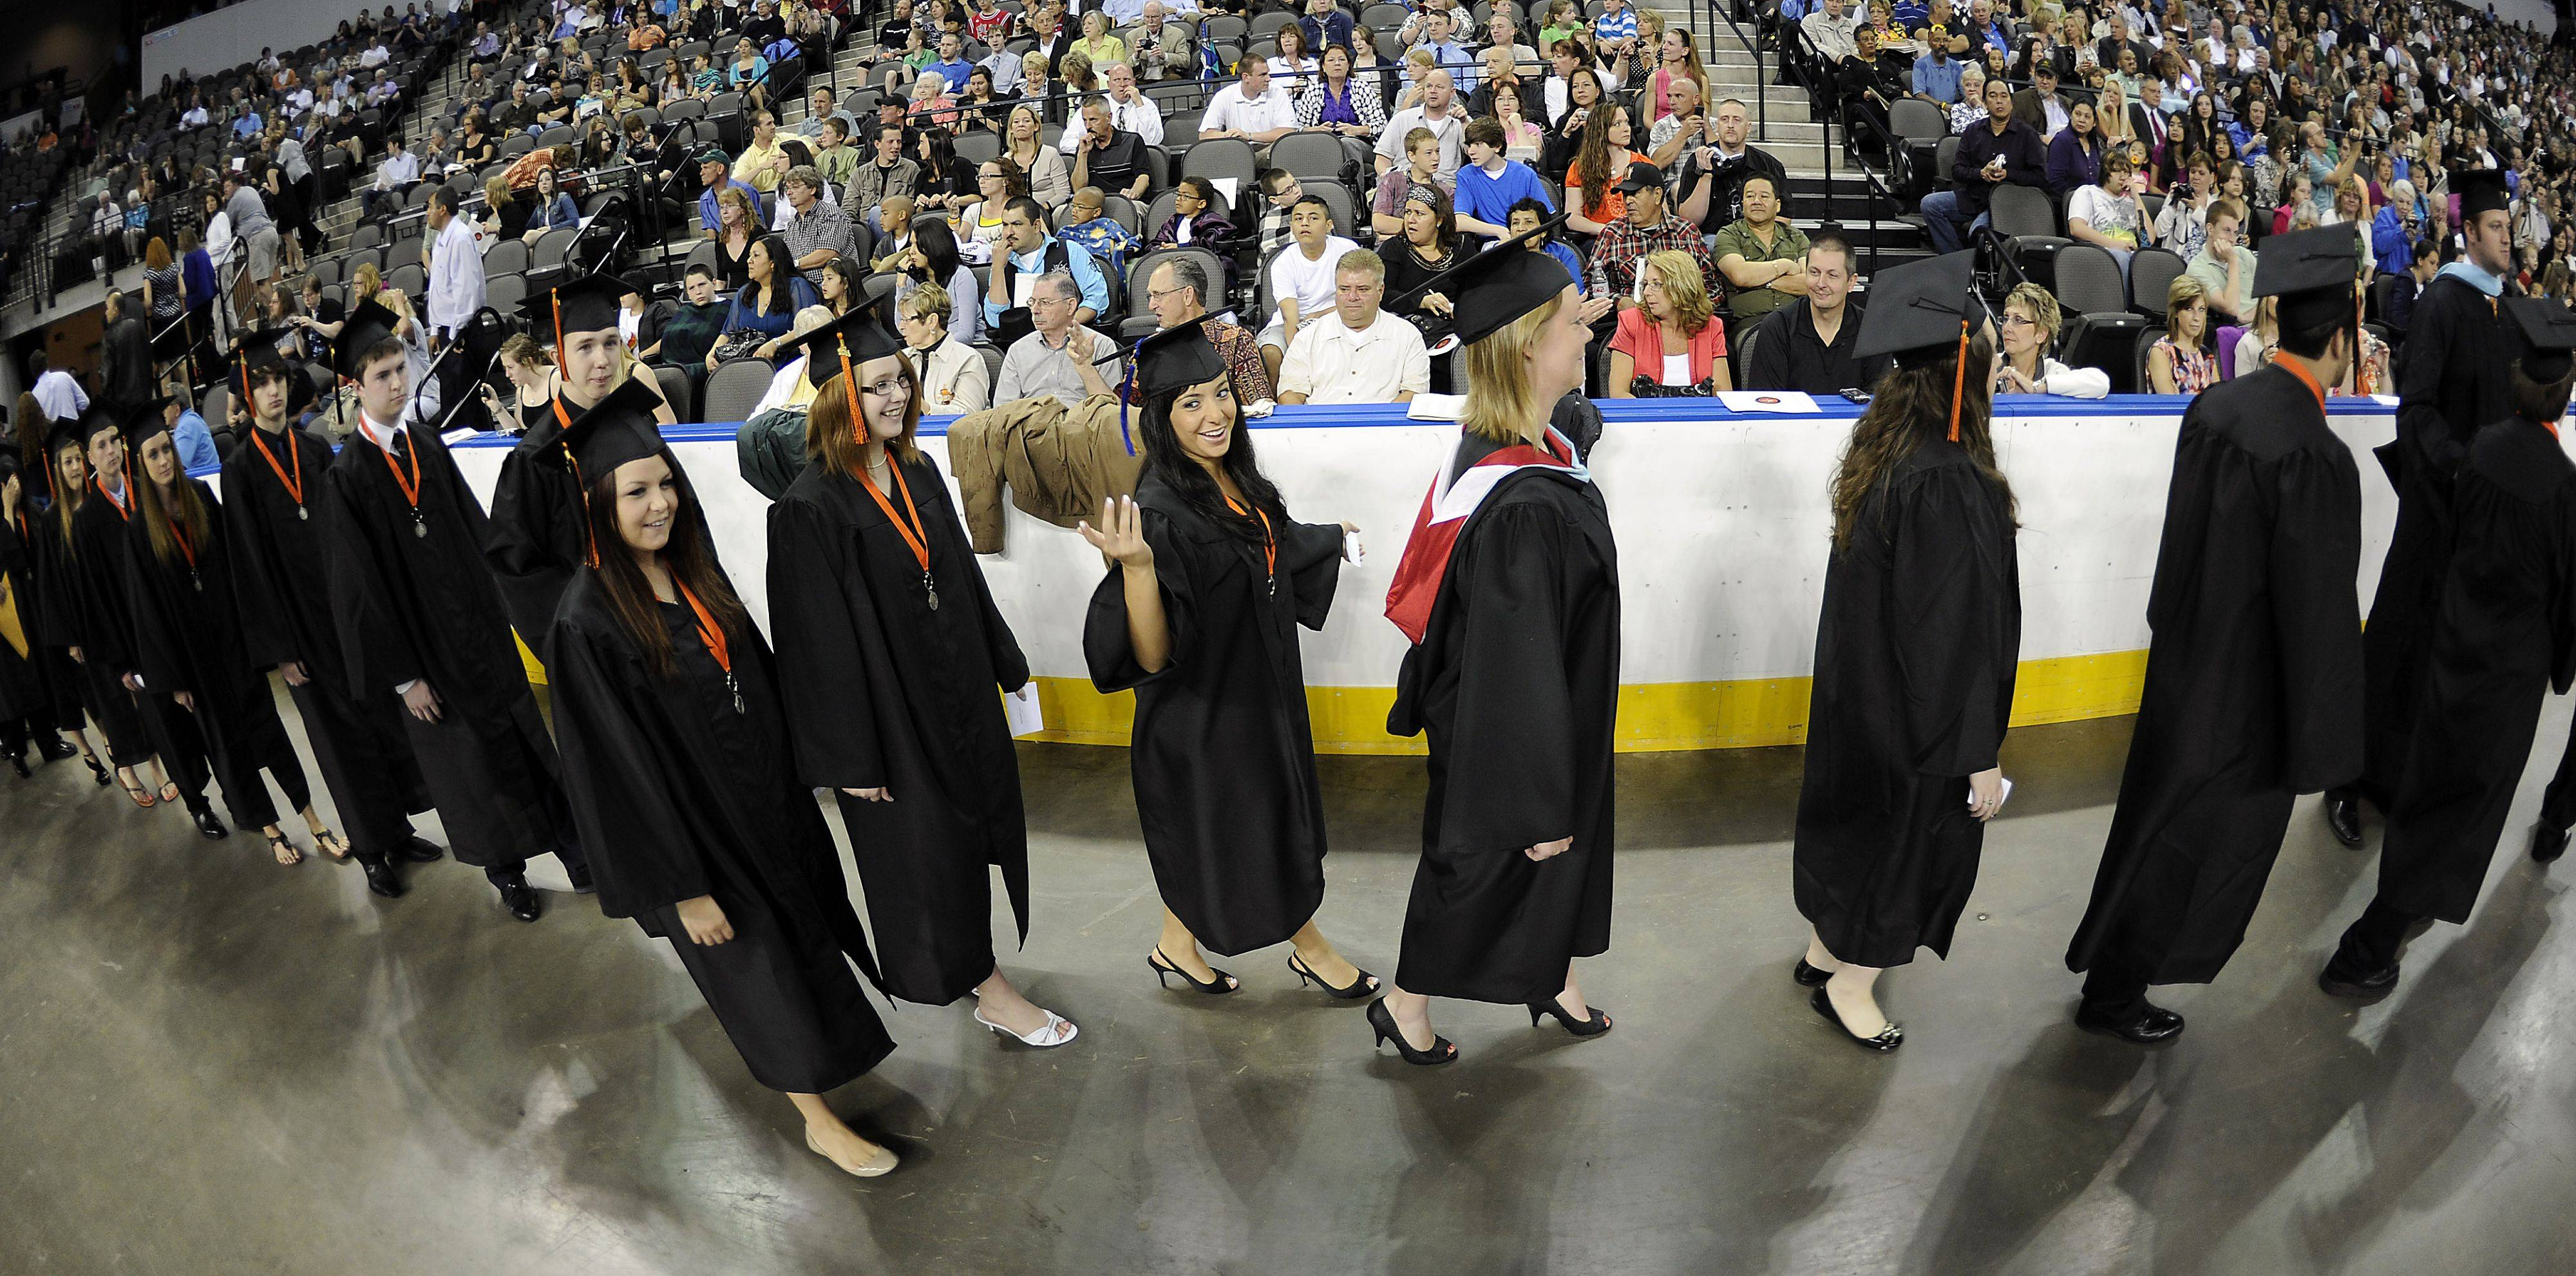 St. Charles East's commencement class of 2011 file past hundreds of proud parents and friends before they became official graduates at the Sears Centre on Sunday.